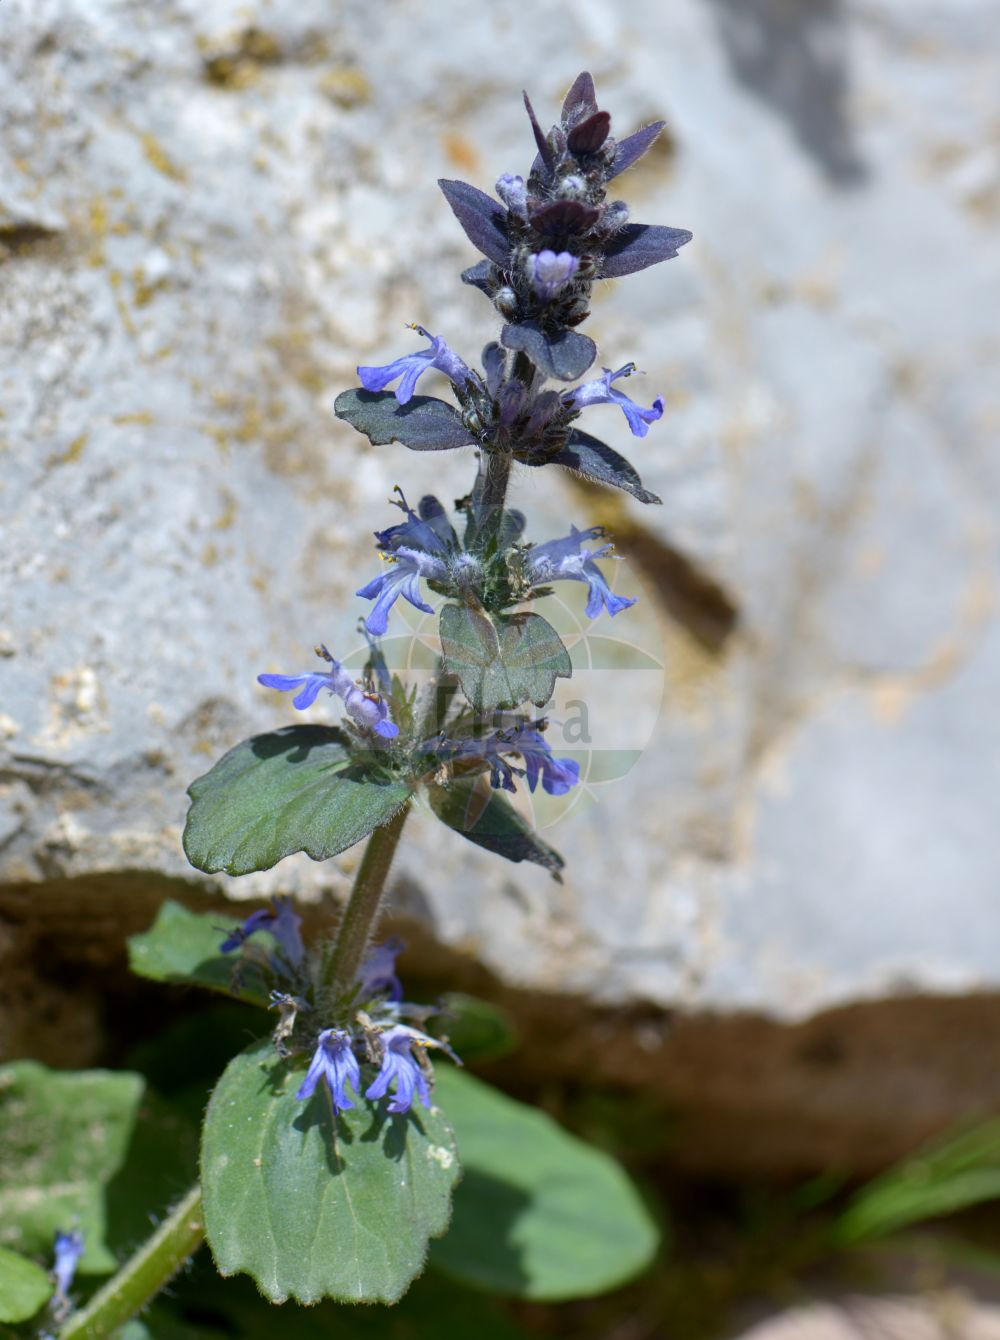 Foto von Ajuga genevensis (Genfer Guensel - Cornish Bugle). Das Bild zeigt Blatt und Bluete. Das Foto wurde in Monte Bondeone, Provincia Autonoma di Trento, Italien, Alpen aufgenommen. ---- Photo of Ajuga genevensis (Genfer Guensel - Cornish Bugle).The image is showing leaf and flower.The picture was taken in Monte Bondeone, Provincia Autonoma di Trento, Italy, Alps.(Ajuga genevensis,Genfer Guensel,Cornish Bugle,Ajuga alpestris,Ajuga alpicola,Ajuga foliosa,Ajuga glabrifolia,Ajuga interrupta,Ajuga lanata,Ajuga montana,Ajuga rugosa,Bugula alpina,Bugula genevensis,Bugula tomentosa,Teucrium genevense,Heide-Guensel,Zottiger Guensel,Blue Bugle,Geneva Bugle,Ajuga,Guensel,Bugle,Lamiaceae,Lippenbluetengewaechse;Lippenbluetler,Nettle family,Blatt,Bluete,leaf,flower)